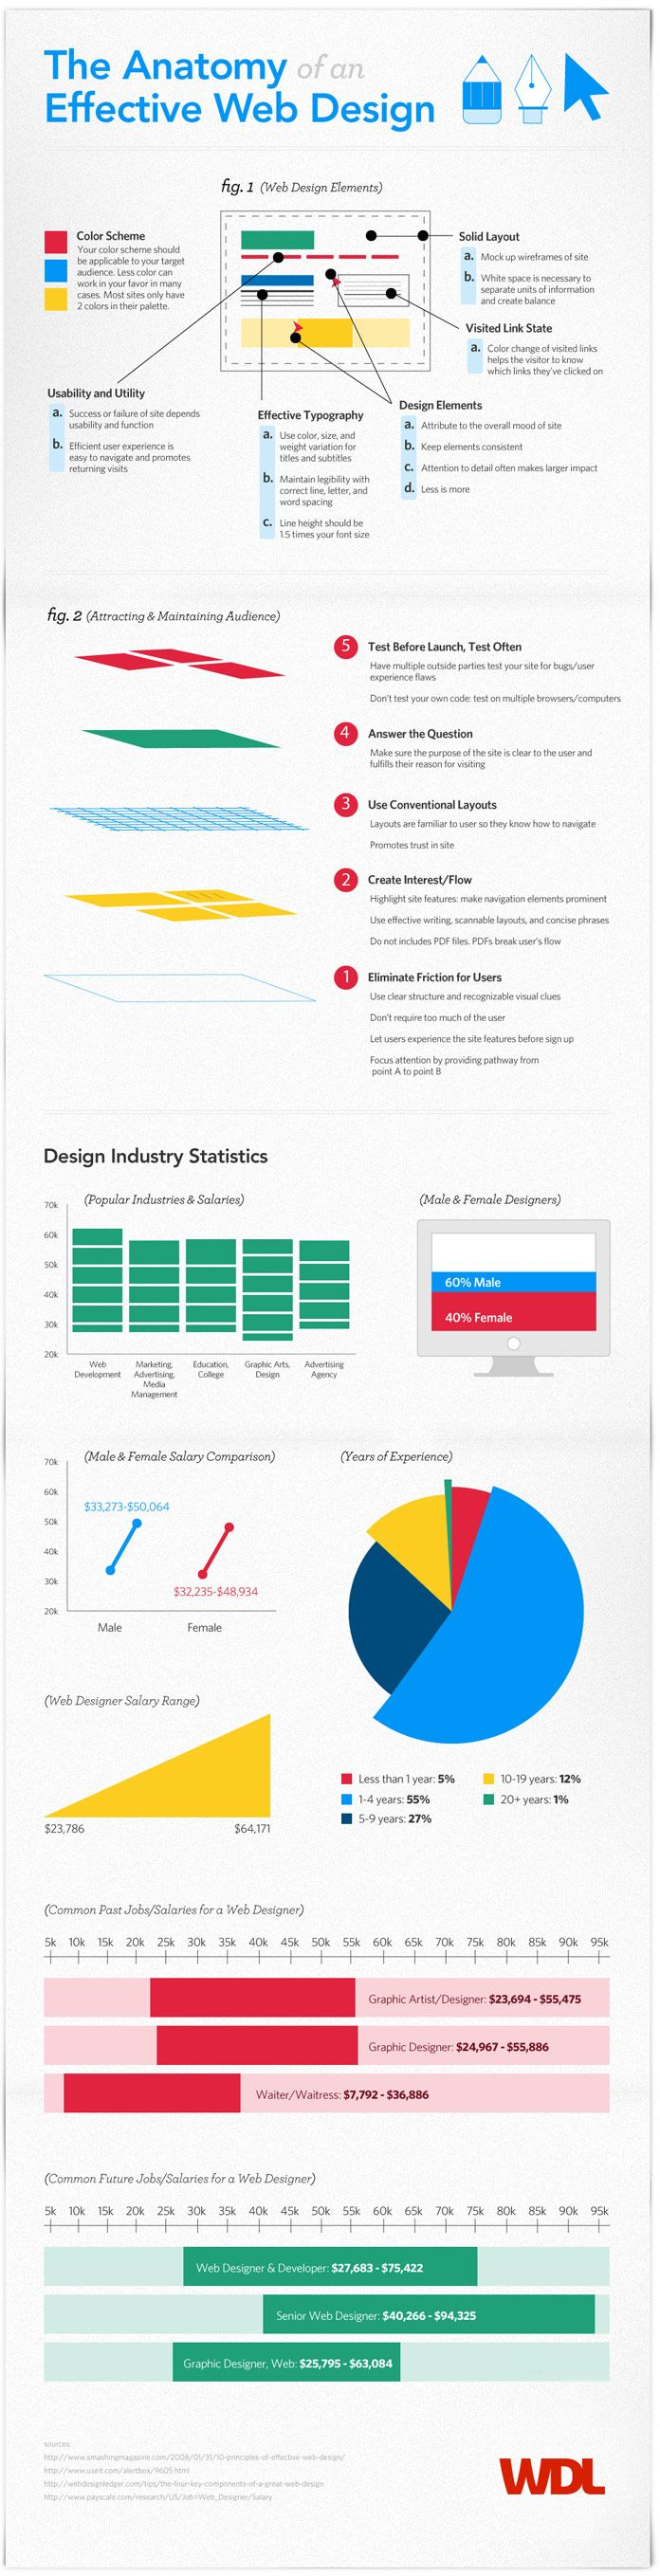 The Anatomy of an Effective Web Design #Infographic  A web design is made up of various components, all .: working together to accomplish a goal – whether it be building a community or selling a product.